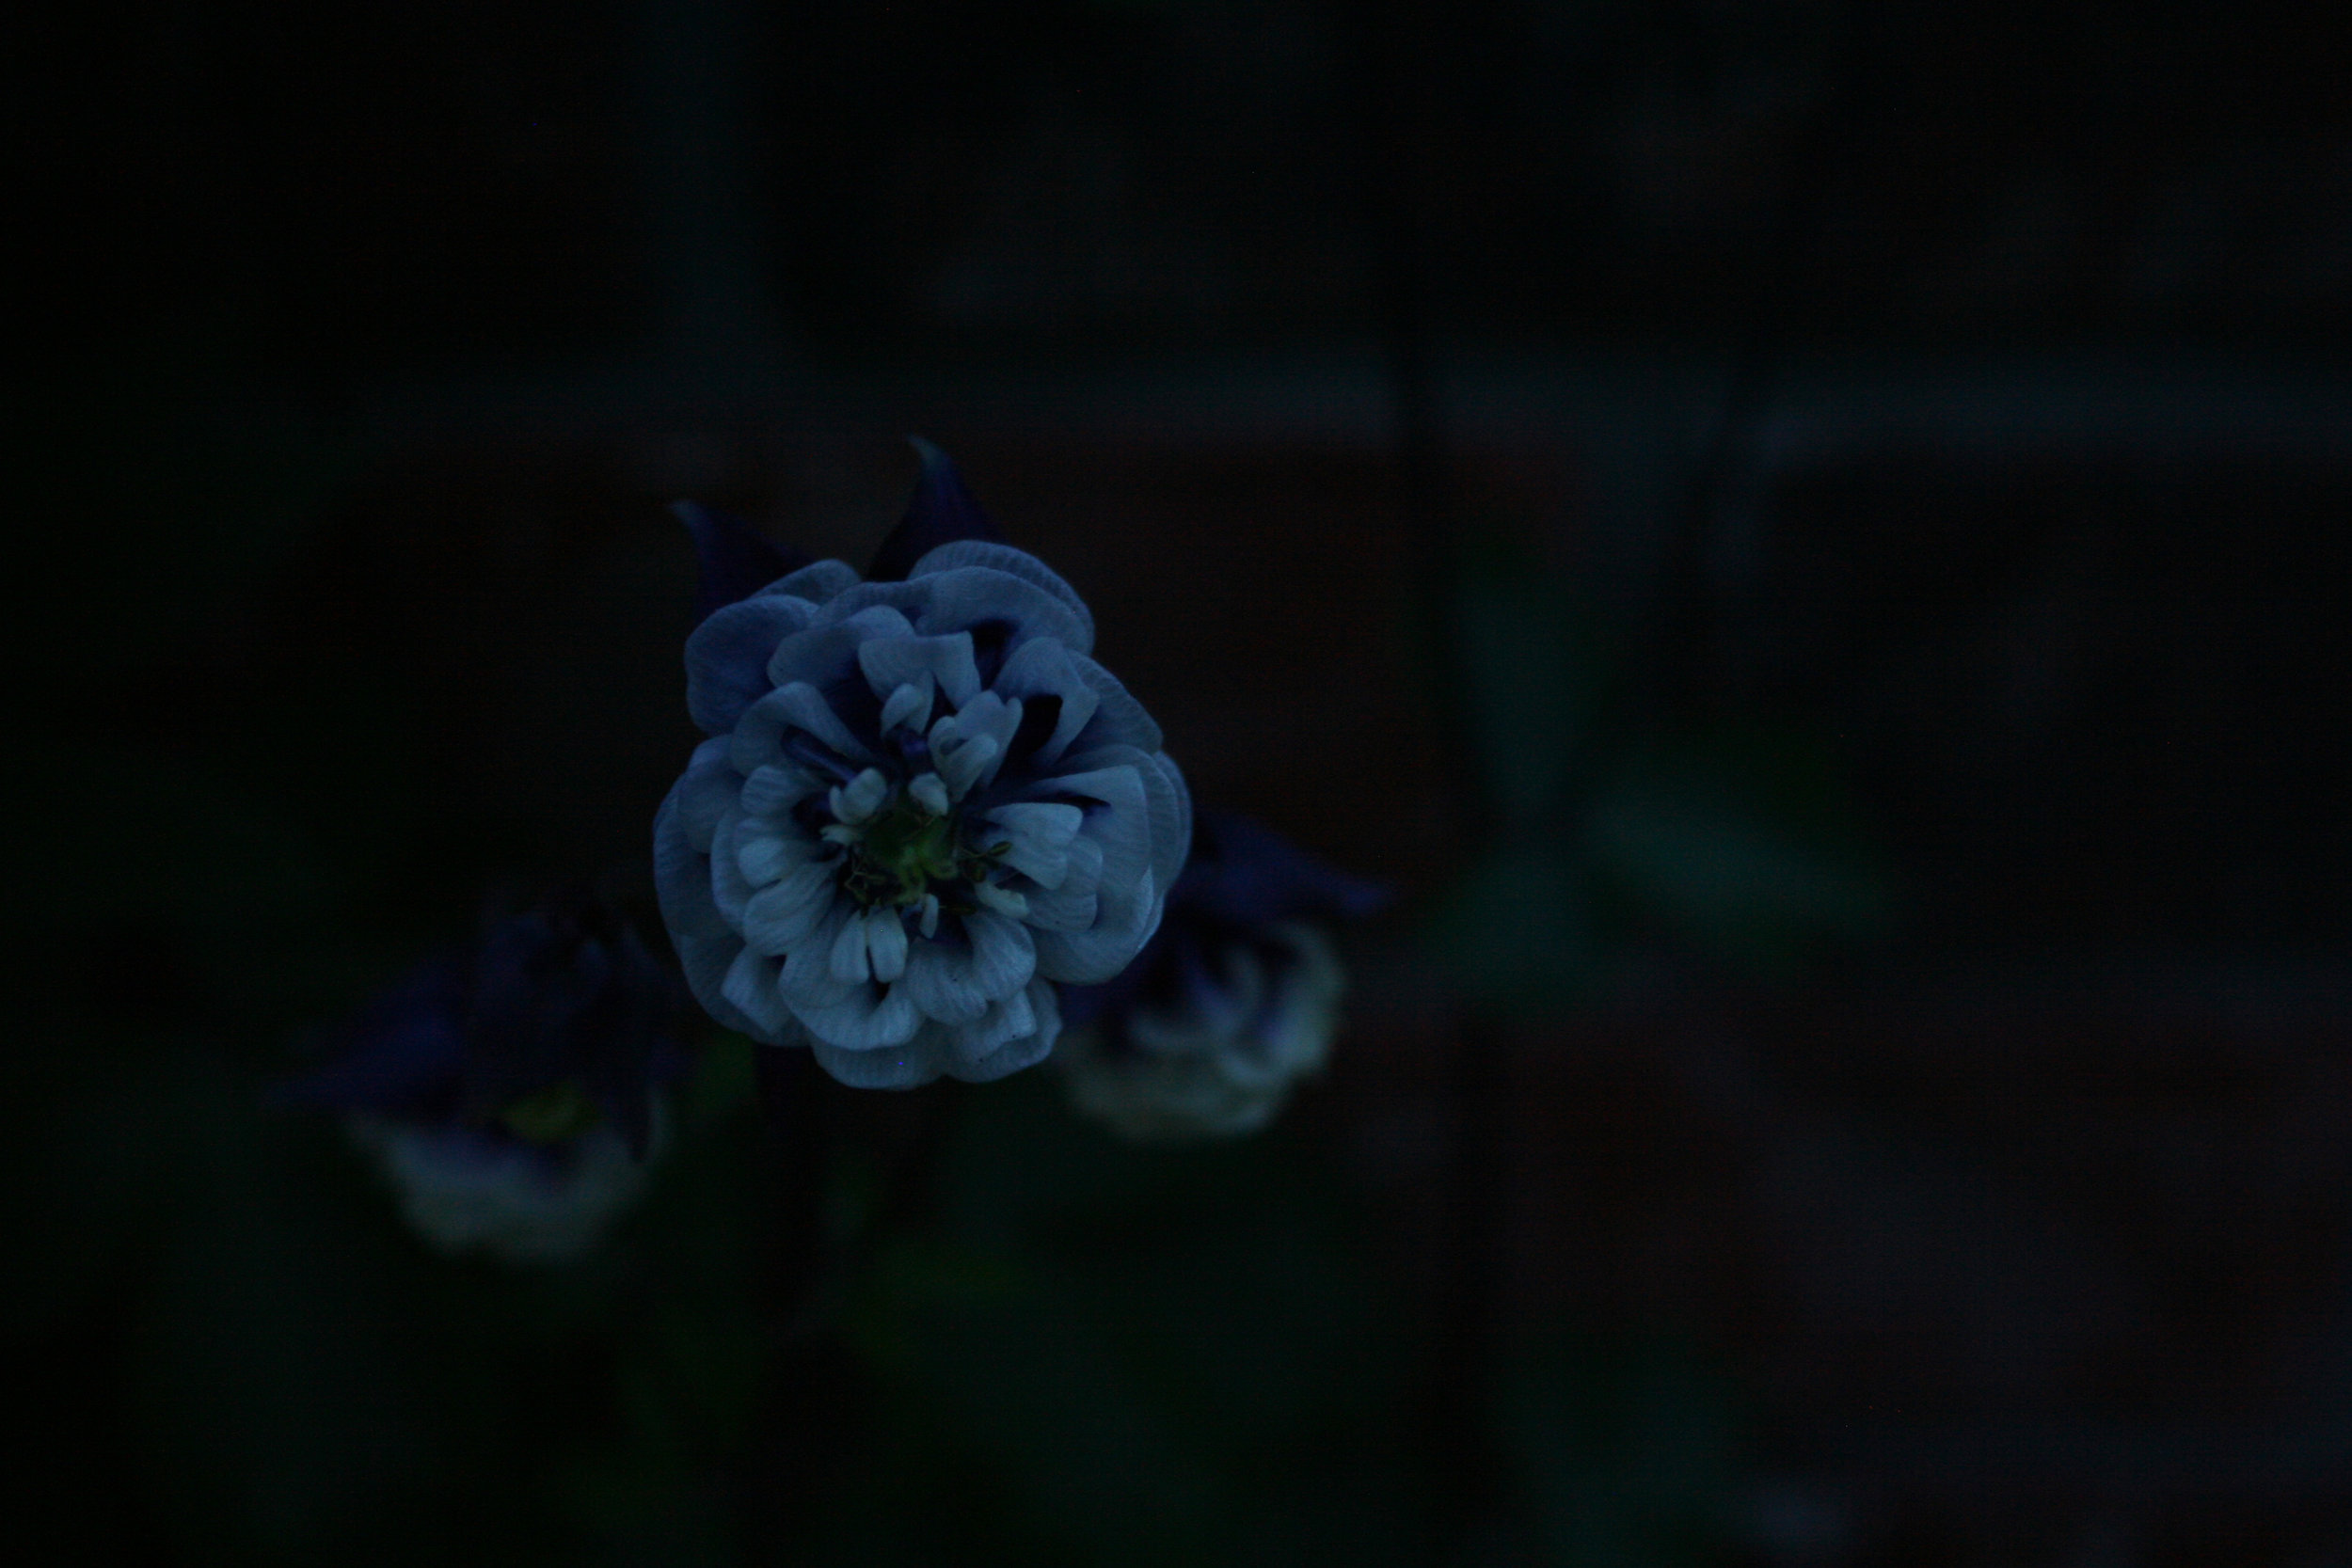 night photo of flower ~image by Kim